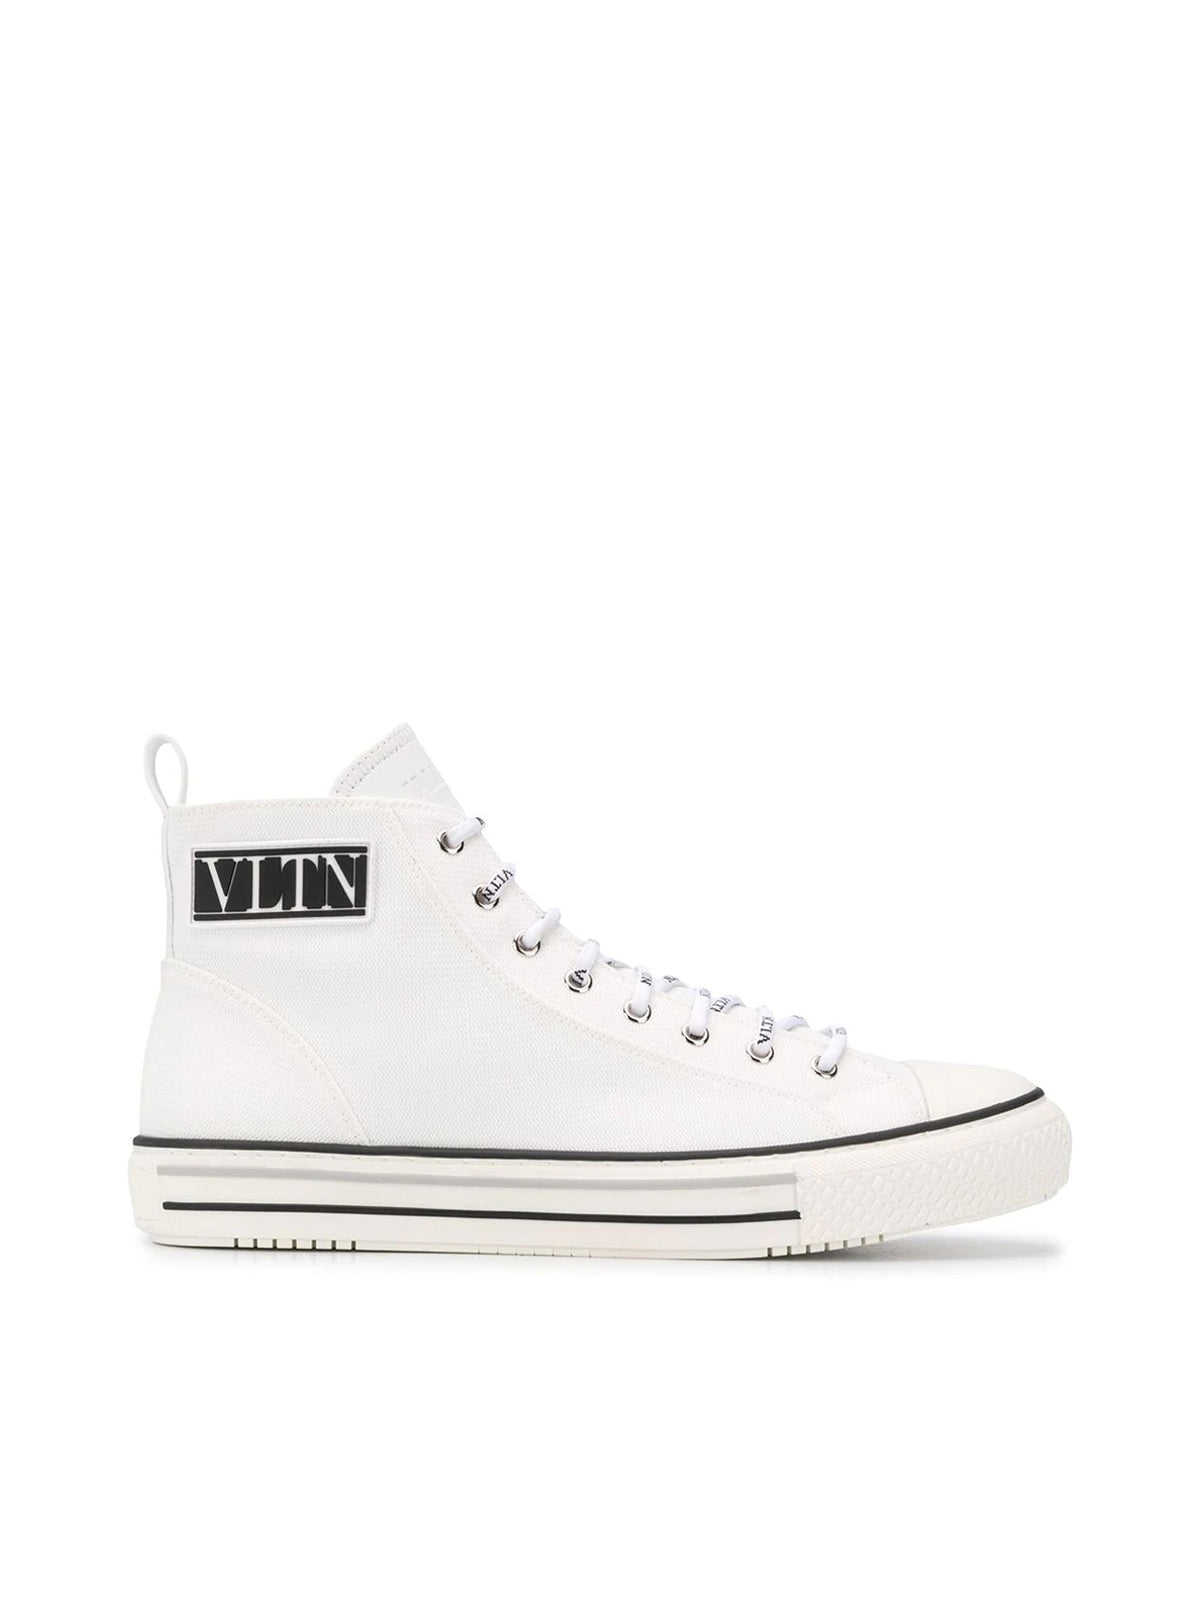 VLTN high-top sneakers